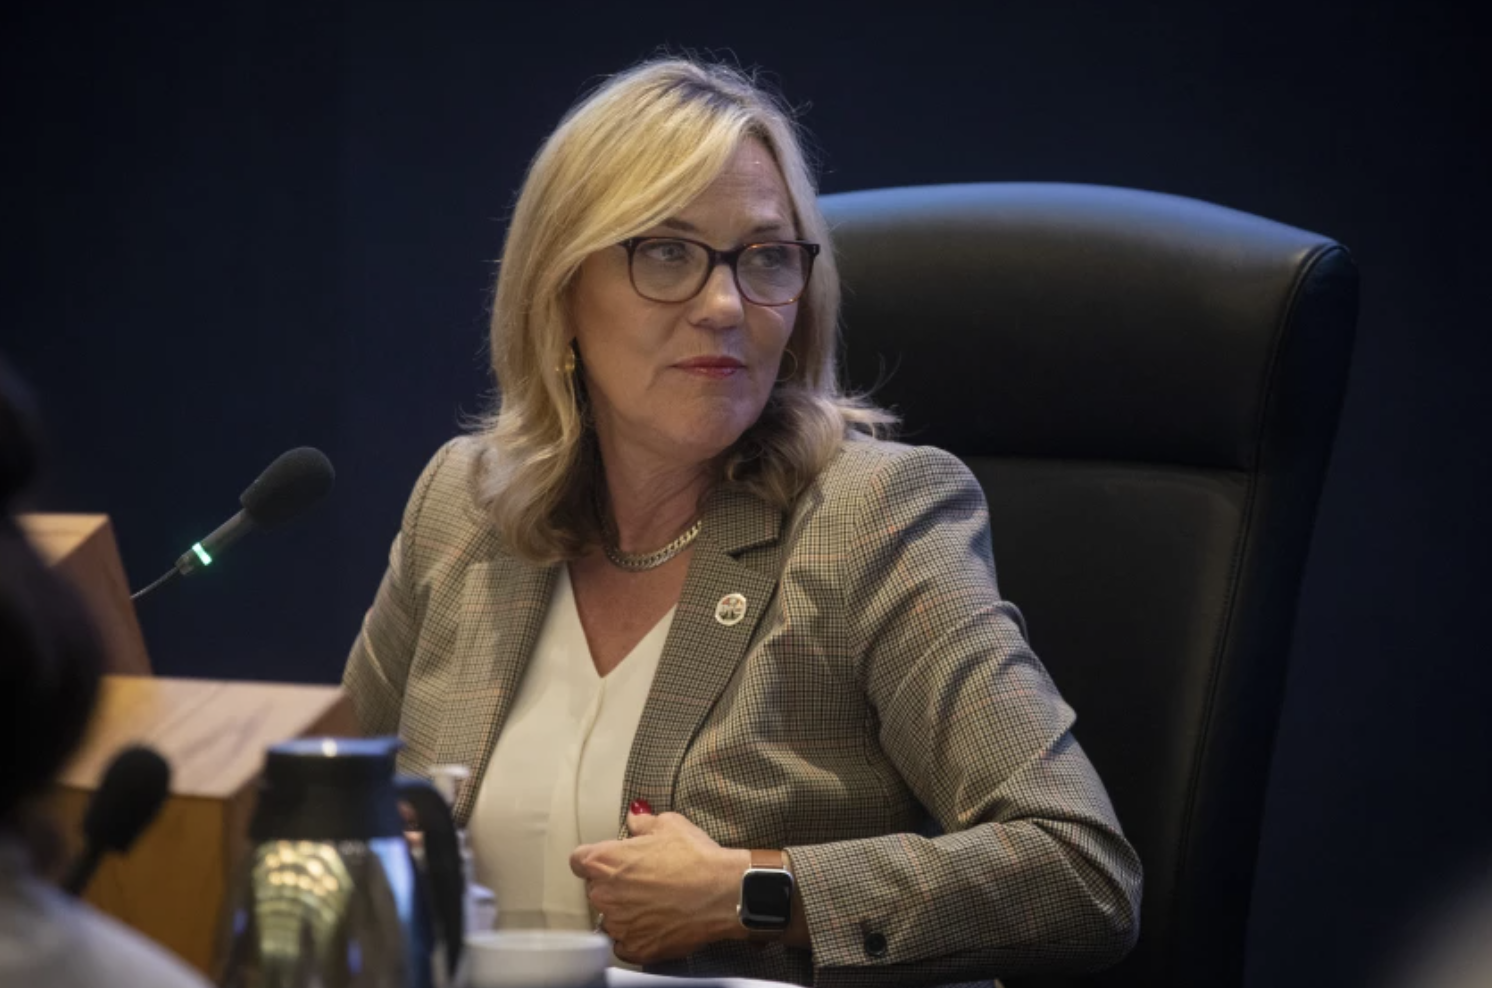 L.A. County Supervisor Kathryn Ann Barger broke ranks with county public health officials this week and called on Gov. Gavin Newson to follow more relaxed guidelines set by federal officials regarding the wearing of masks. (Francine Orr / Los Angeles Times)